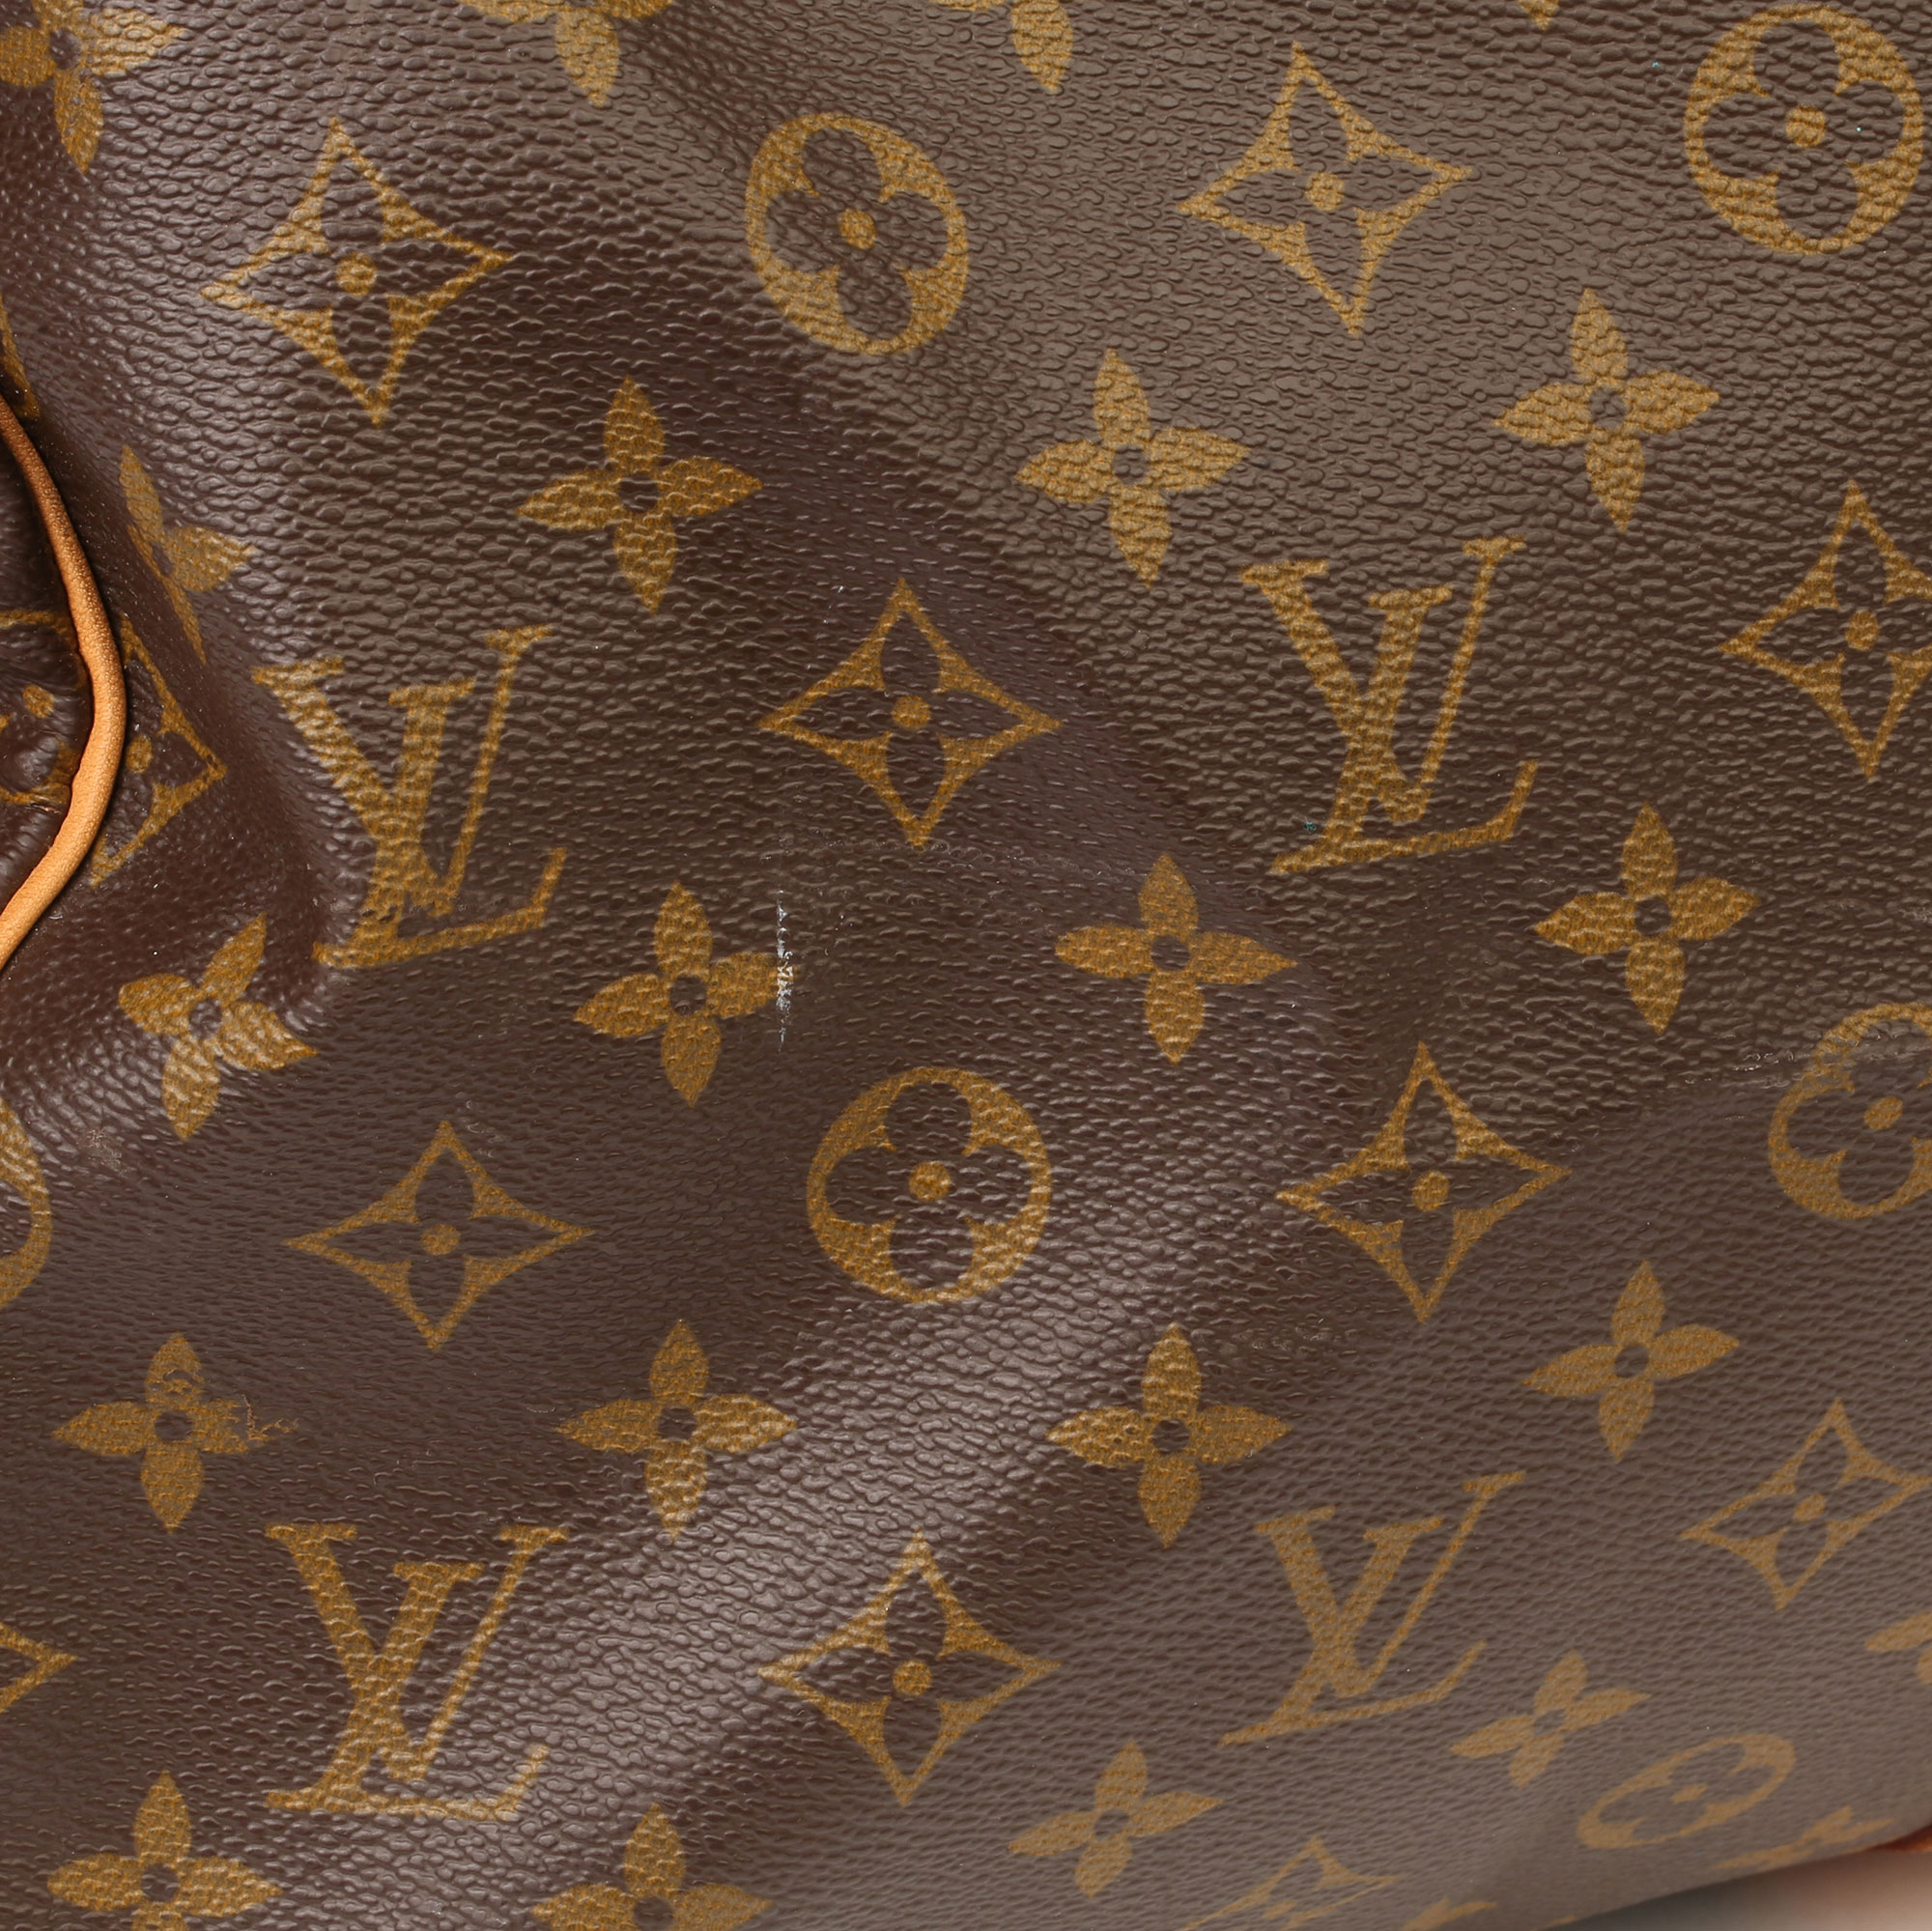 Louis Vuitton Brown Monogram Coated Canvas & Vachetta Leather Vintage Keepall 55 - Image 3 of 14